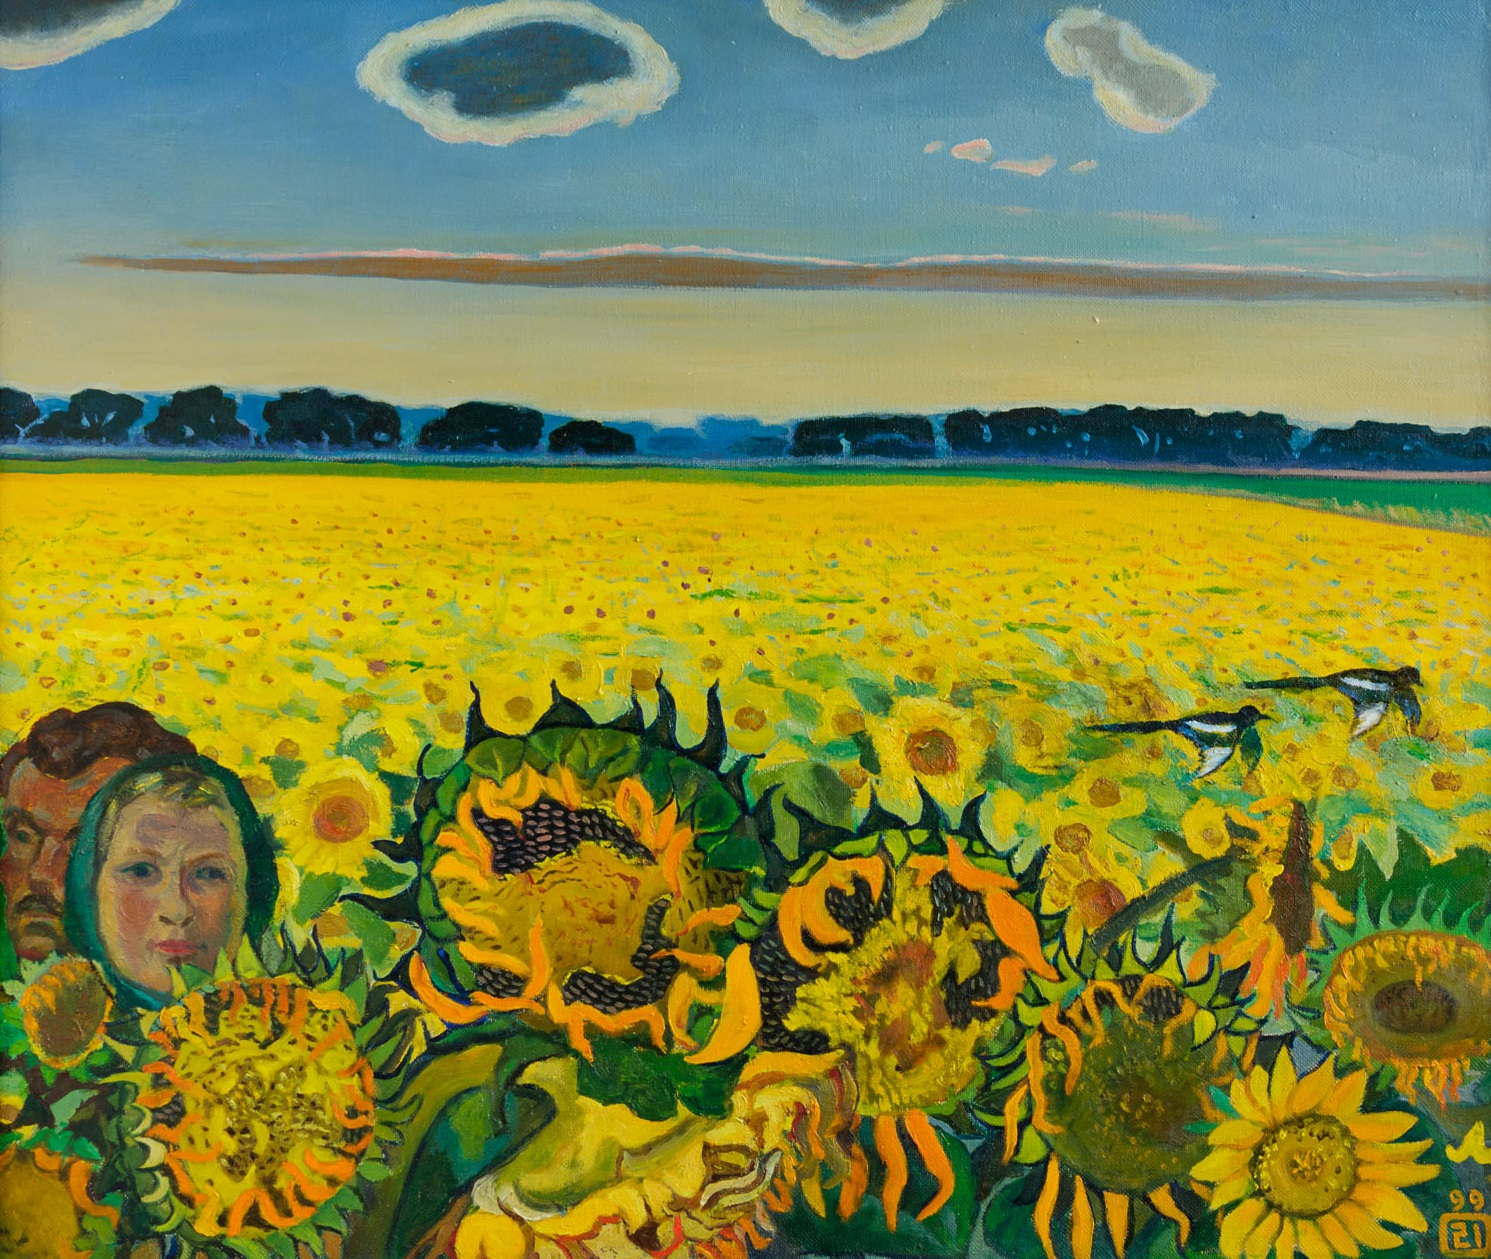 Moesey Li Artwork Field of sunflowers, 1999 Oil Painting, Landscape